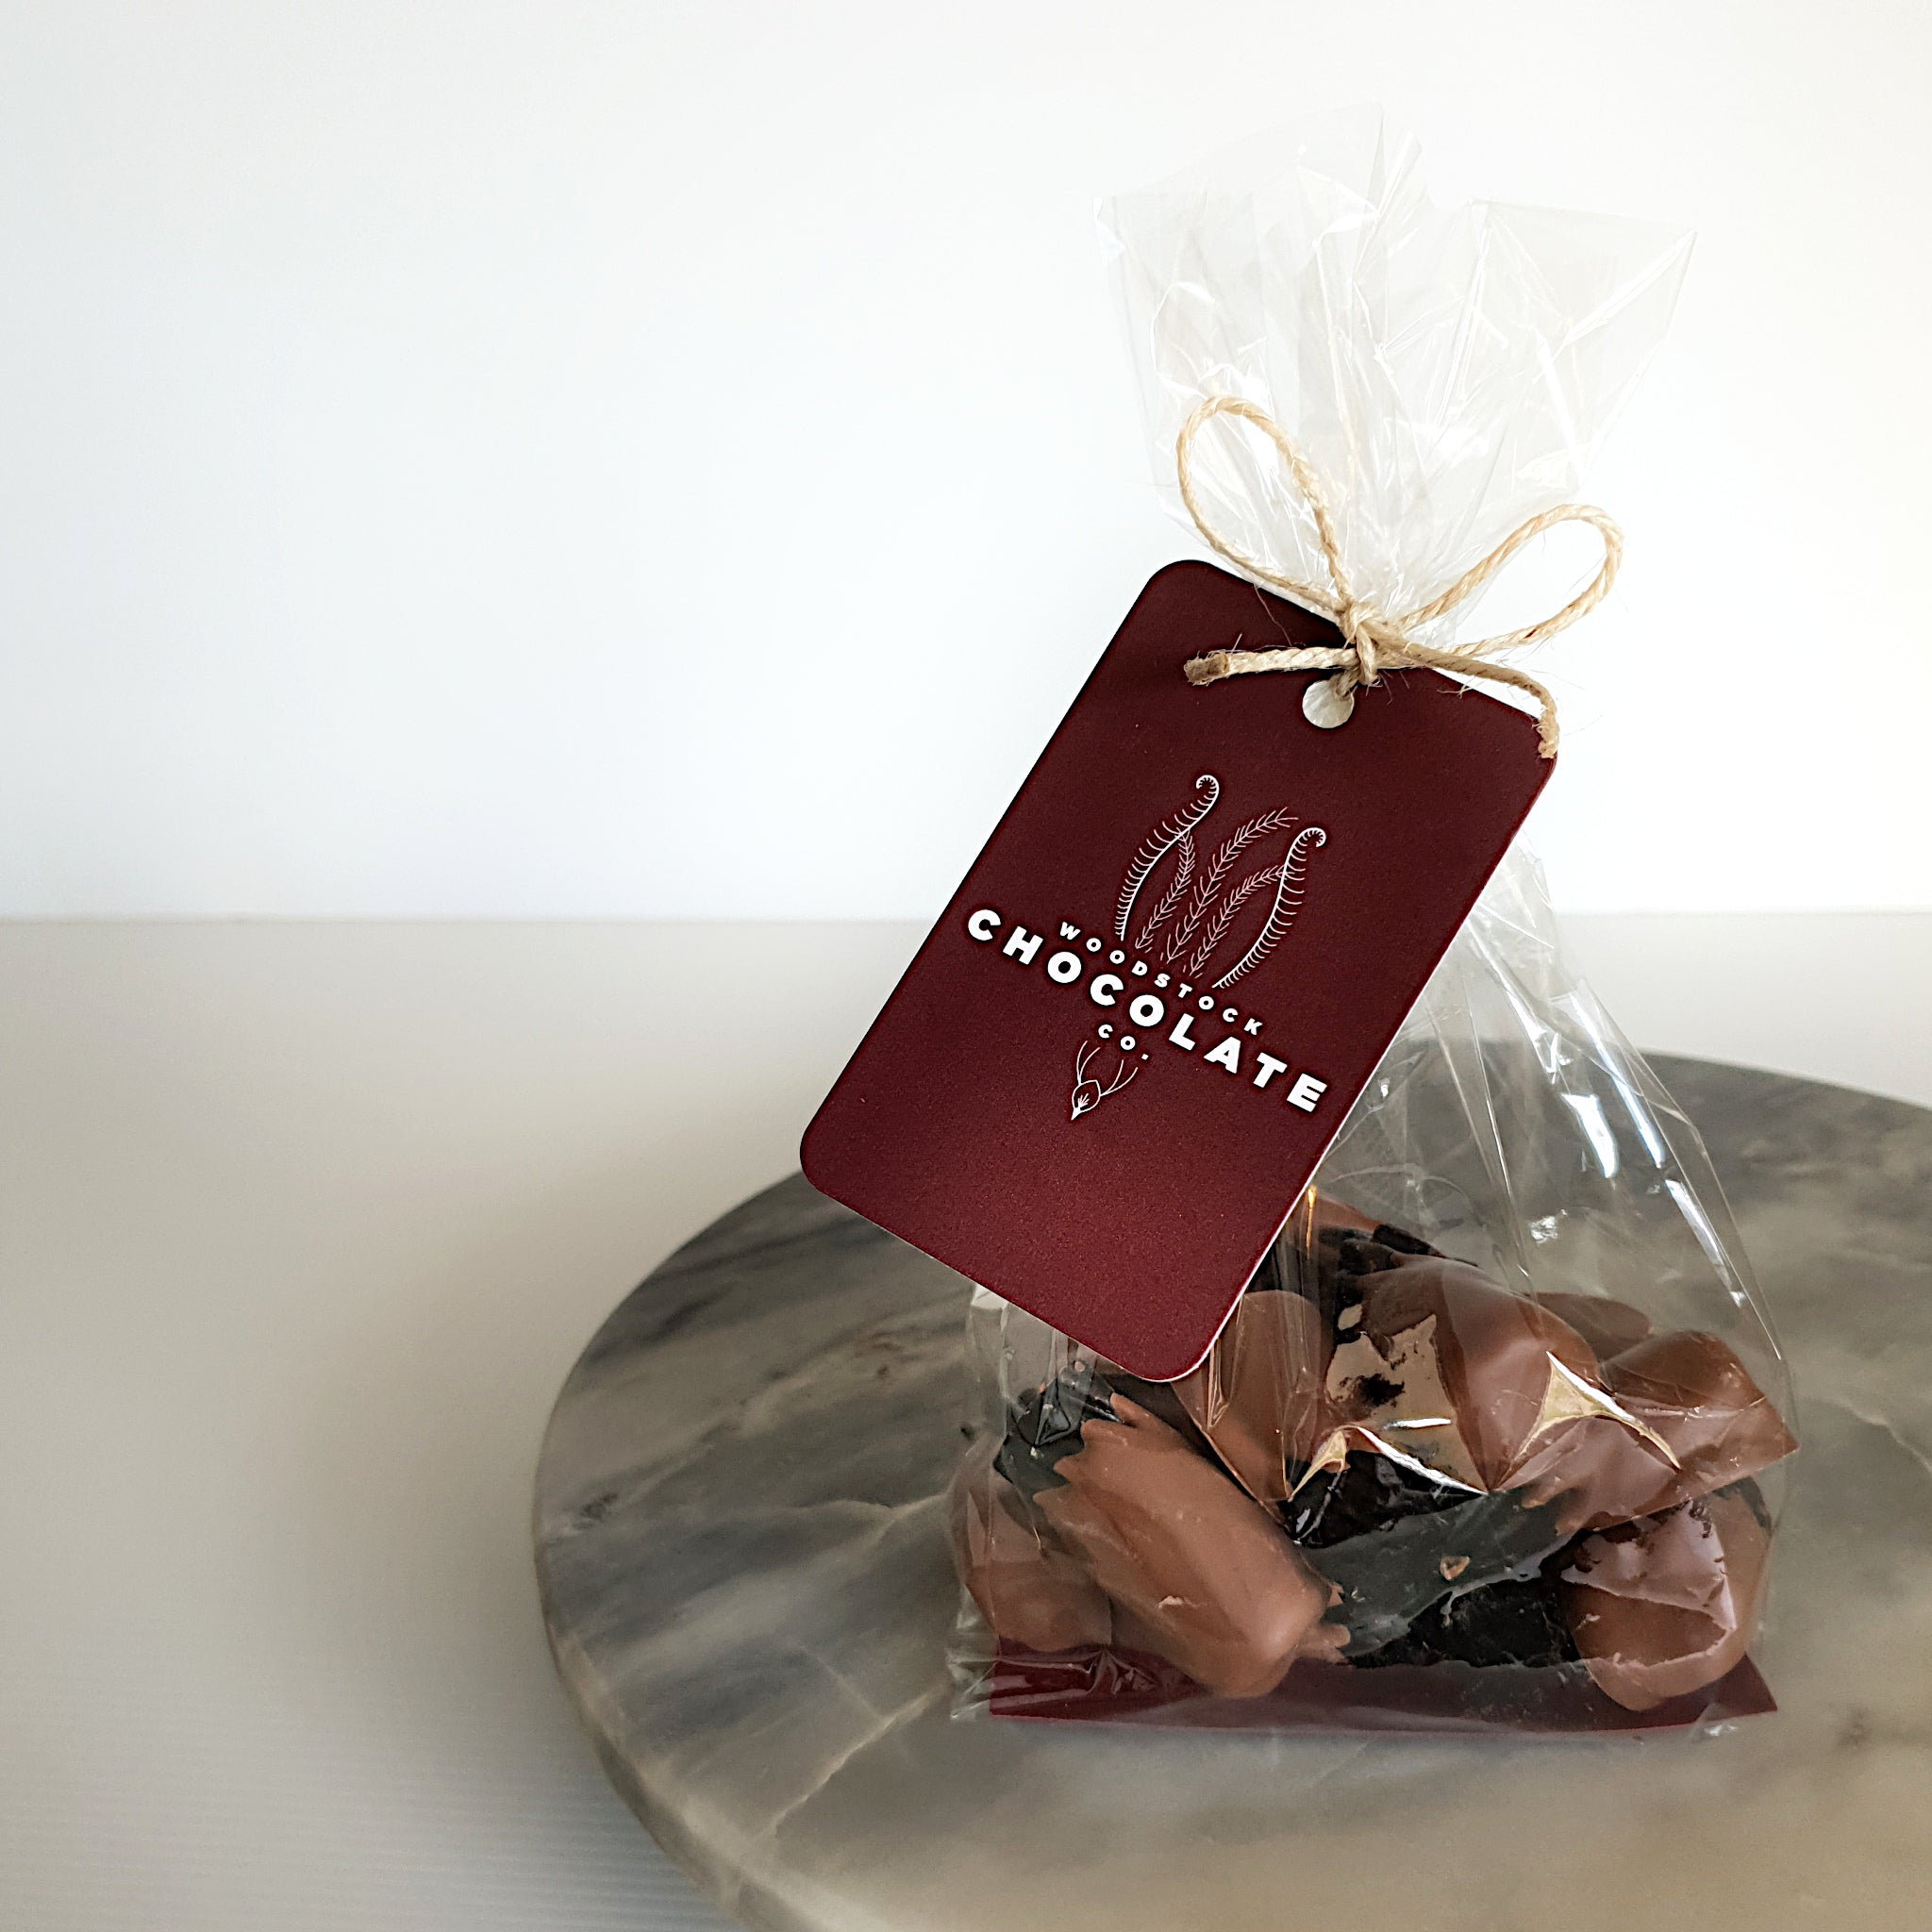 Milk chocolate coated liquorice, handmade in Milton NSW using Callebaut Belgian chocolate